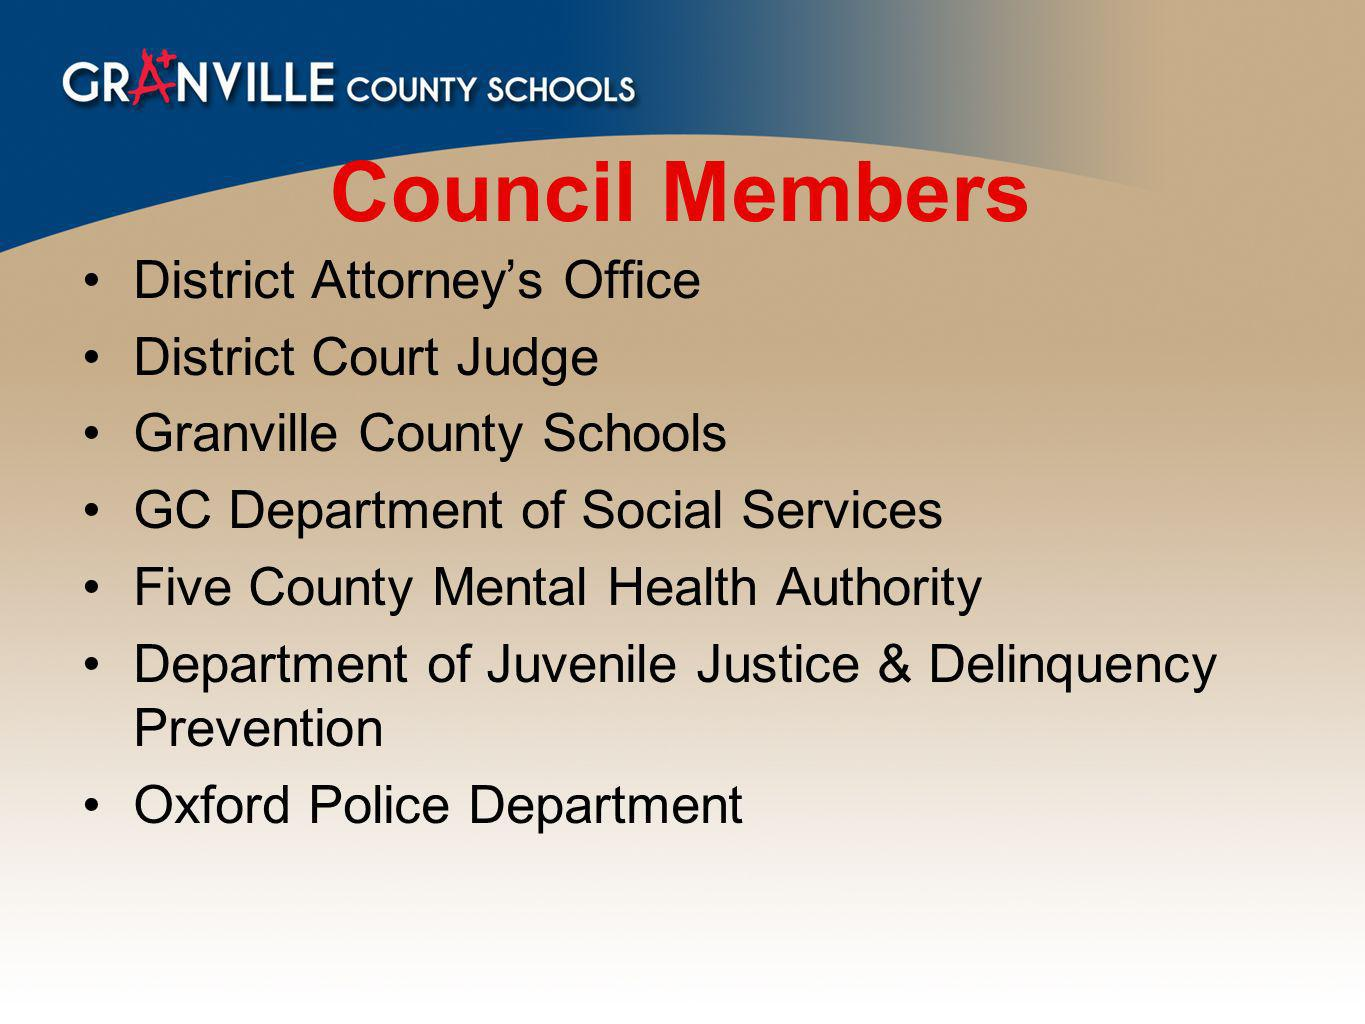 Council Members District Attorneys Office District Court Judge Granville County Schools GC Department of Social Services Five County Mental Health Authority Department of Juvenile Justice & Delinquency Prevention Oxford Police Department